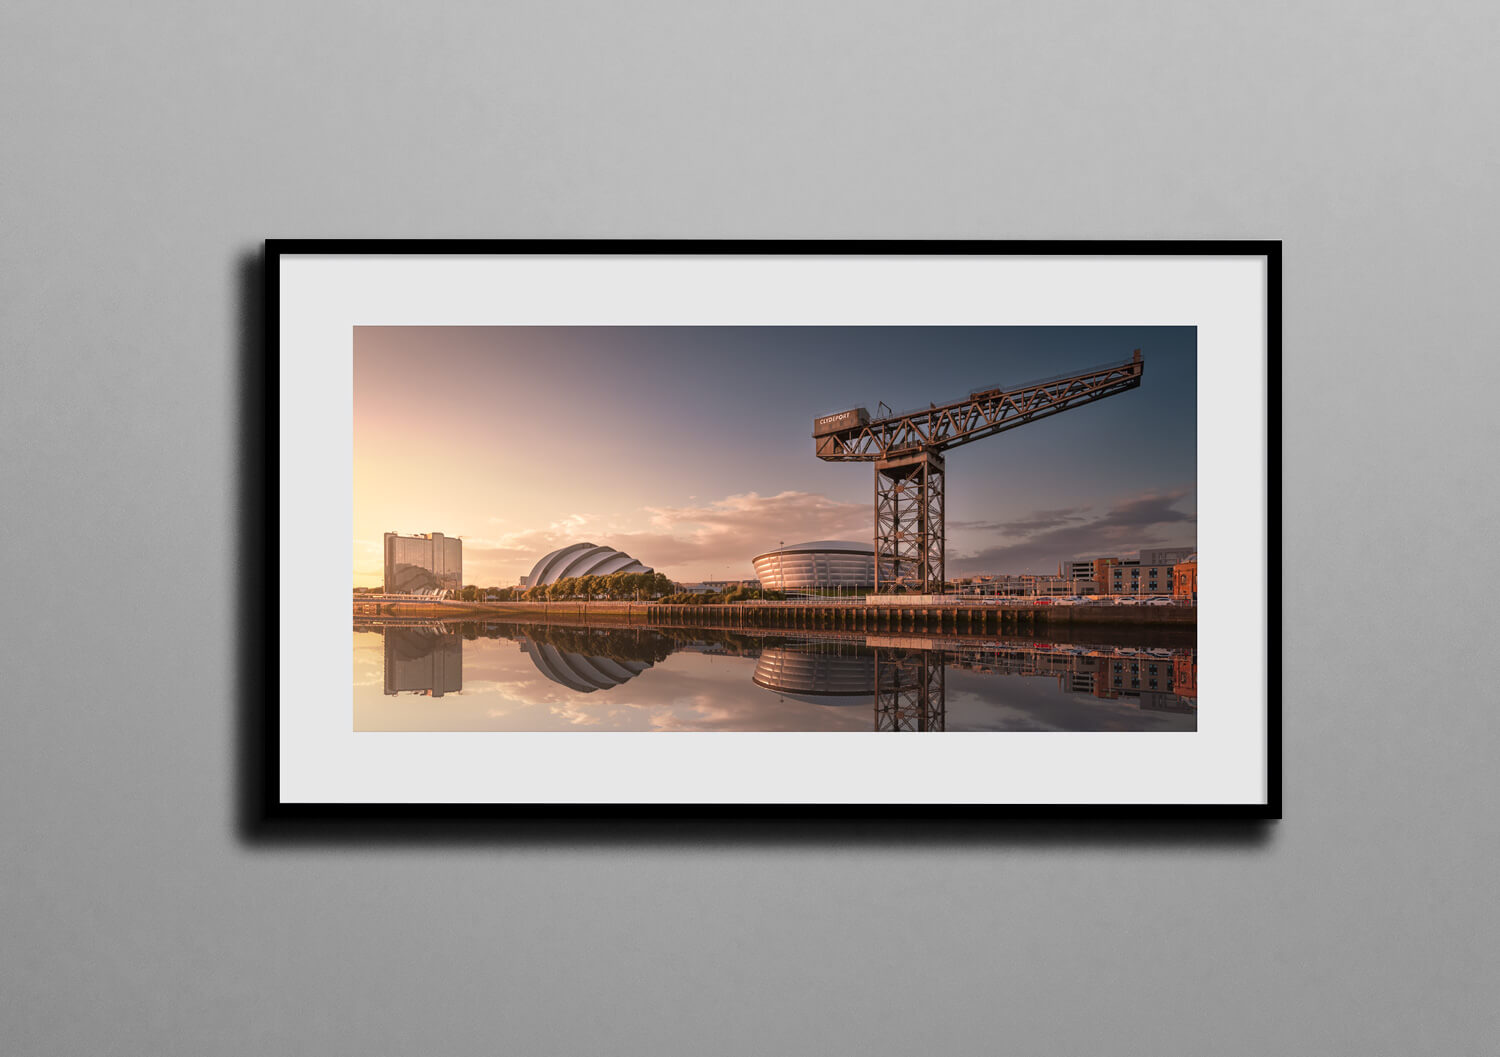 titans of the clyde box frame mockup